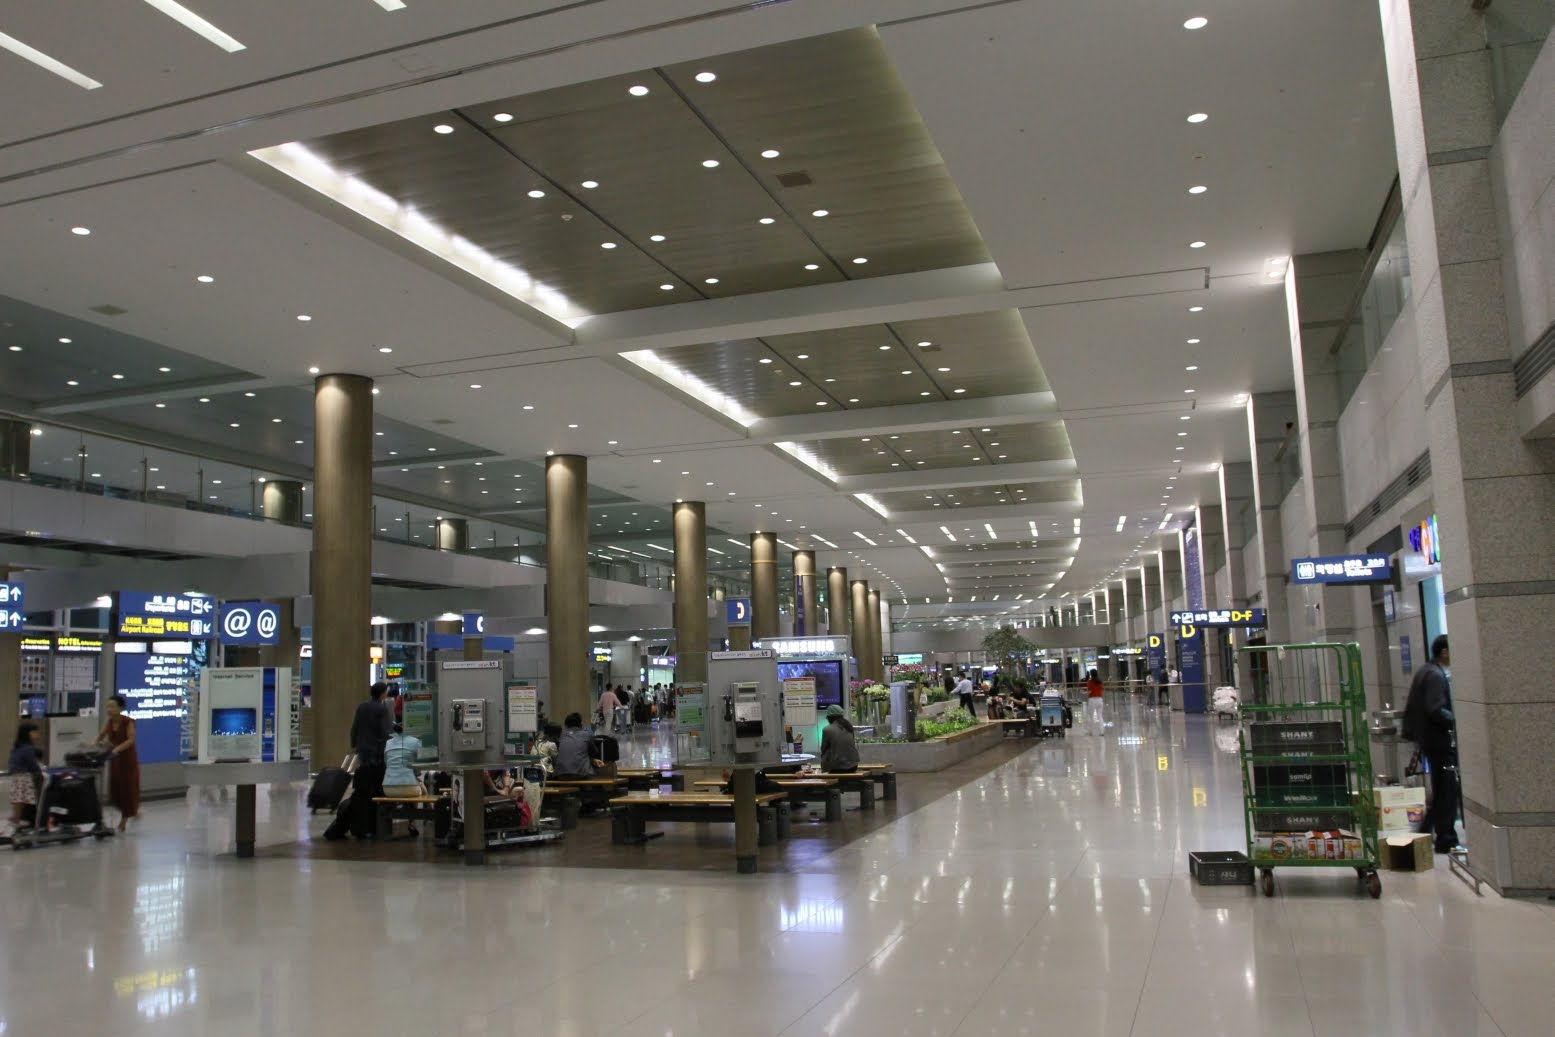 south korea airport 2 - photo #8